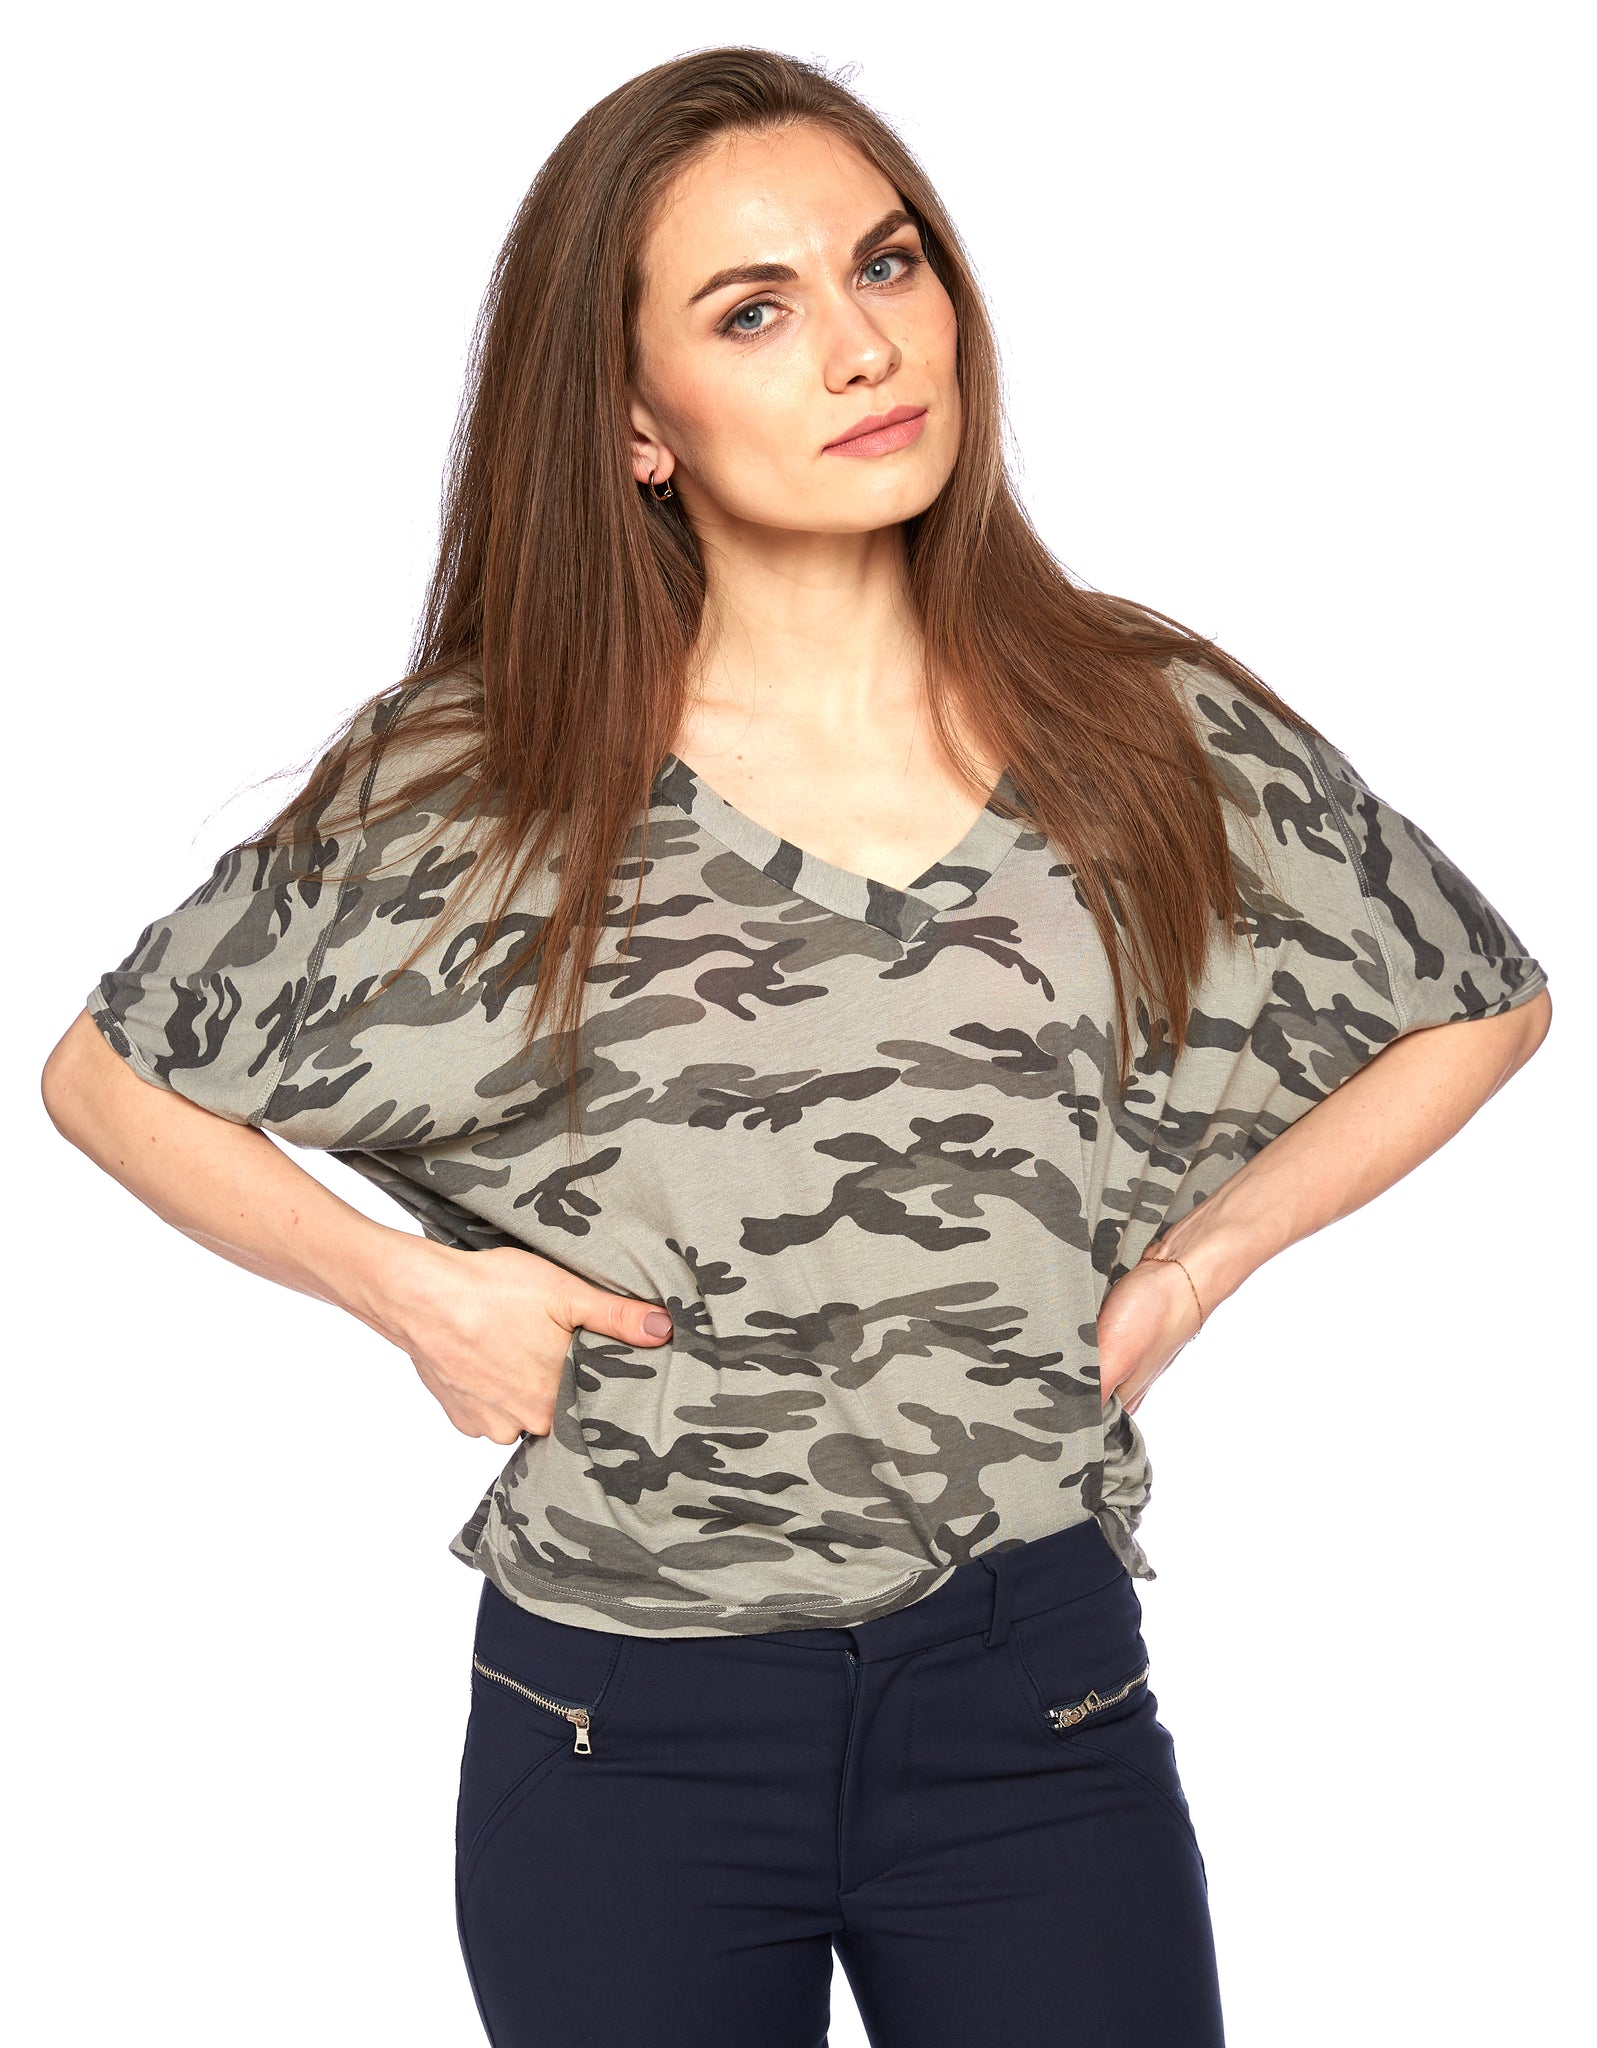 Viva Tee in Laurel Oak Camo